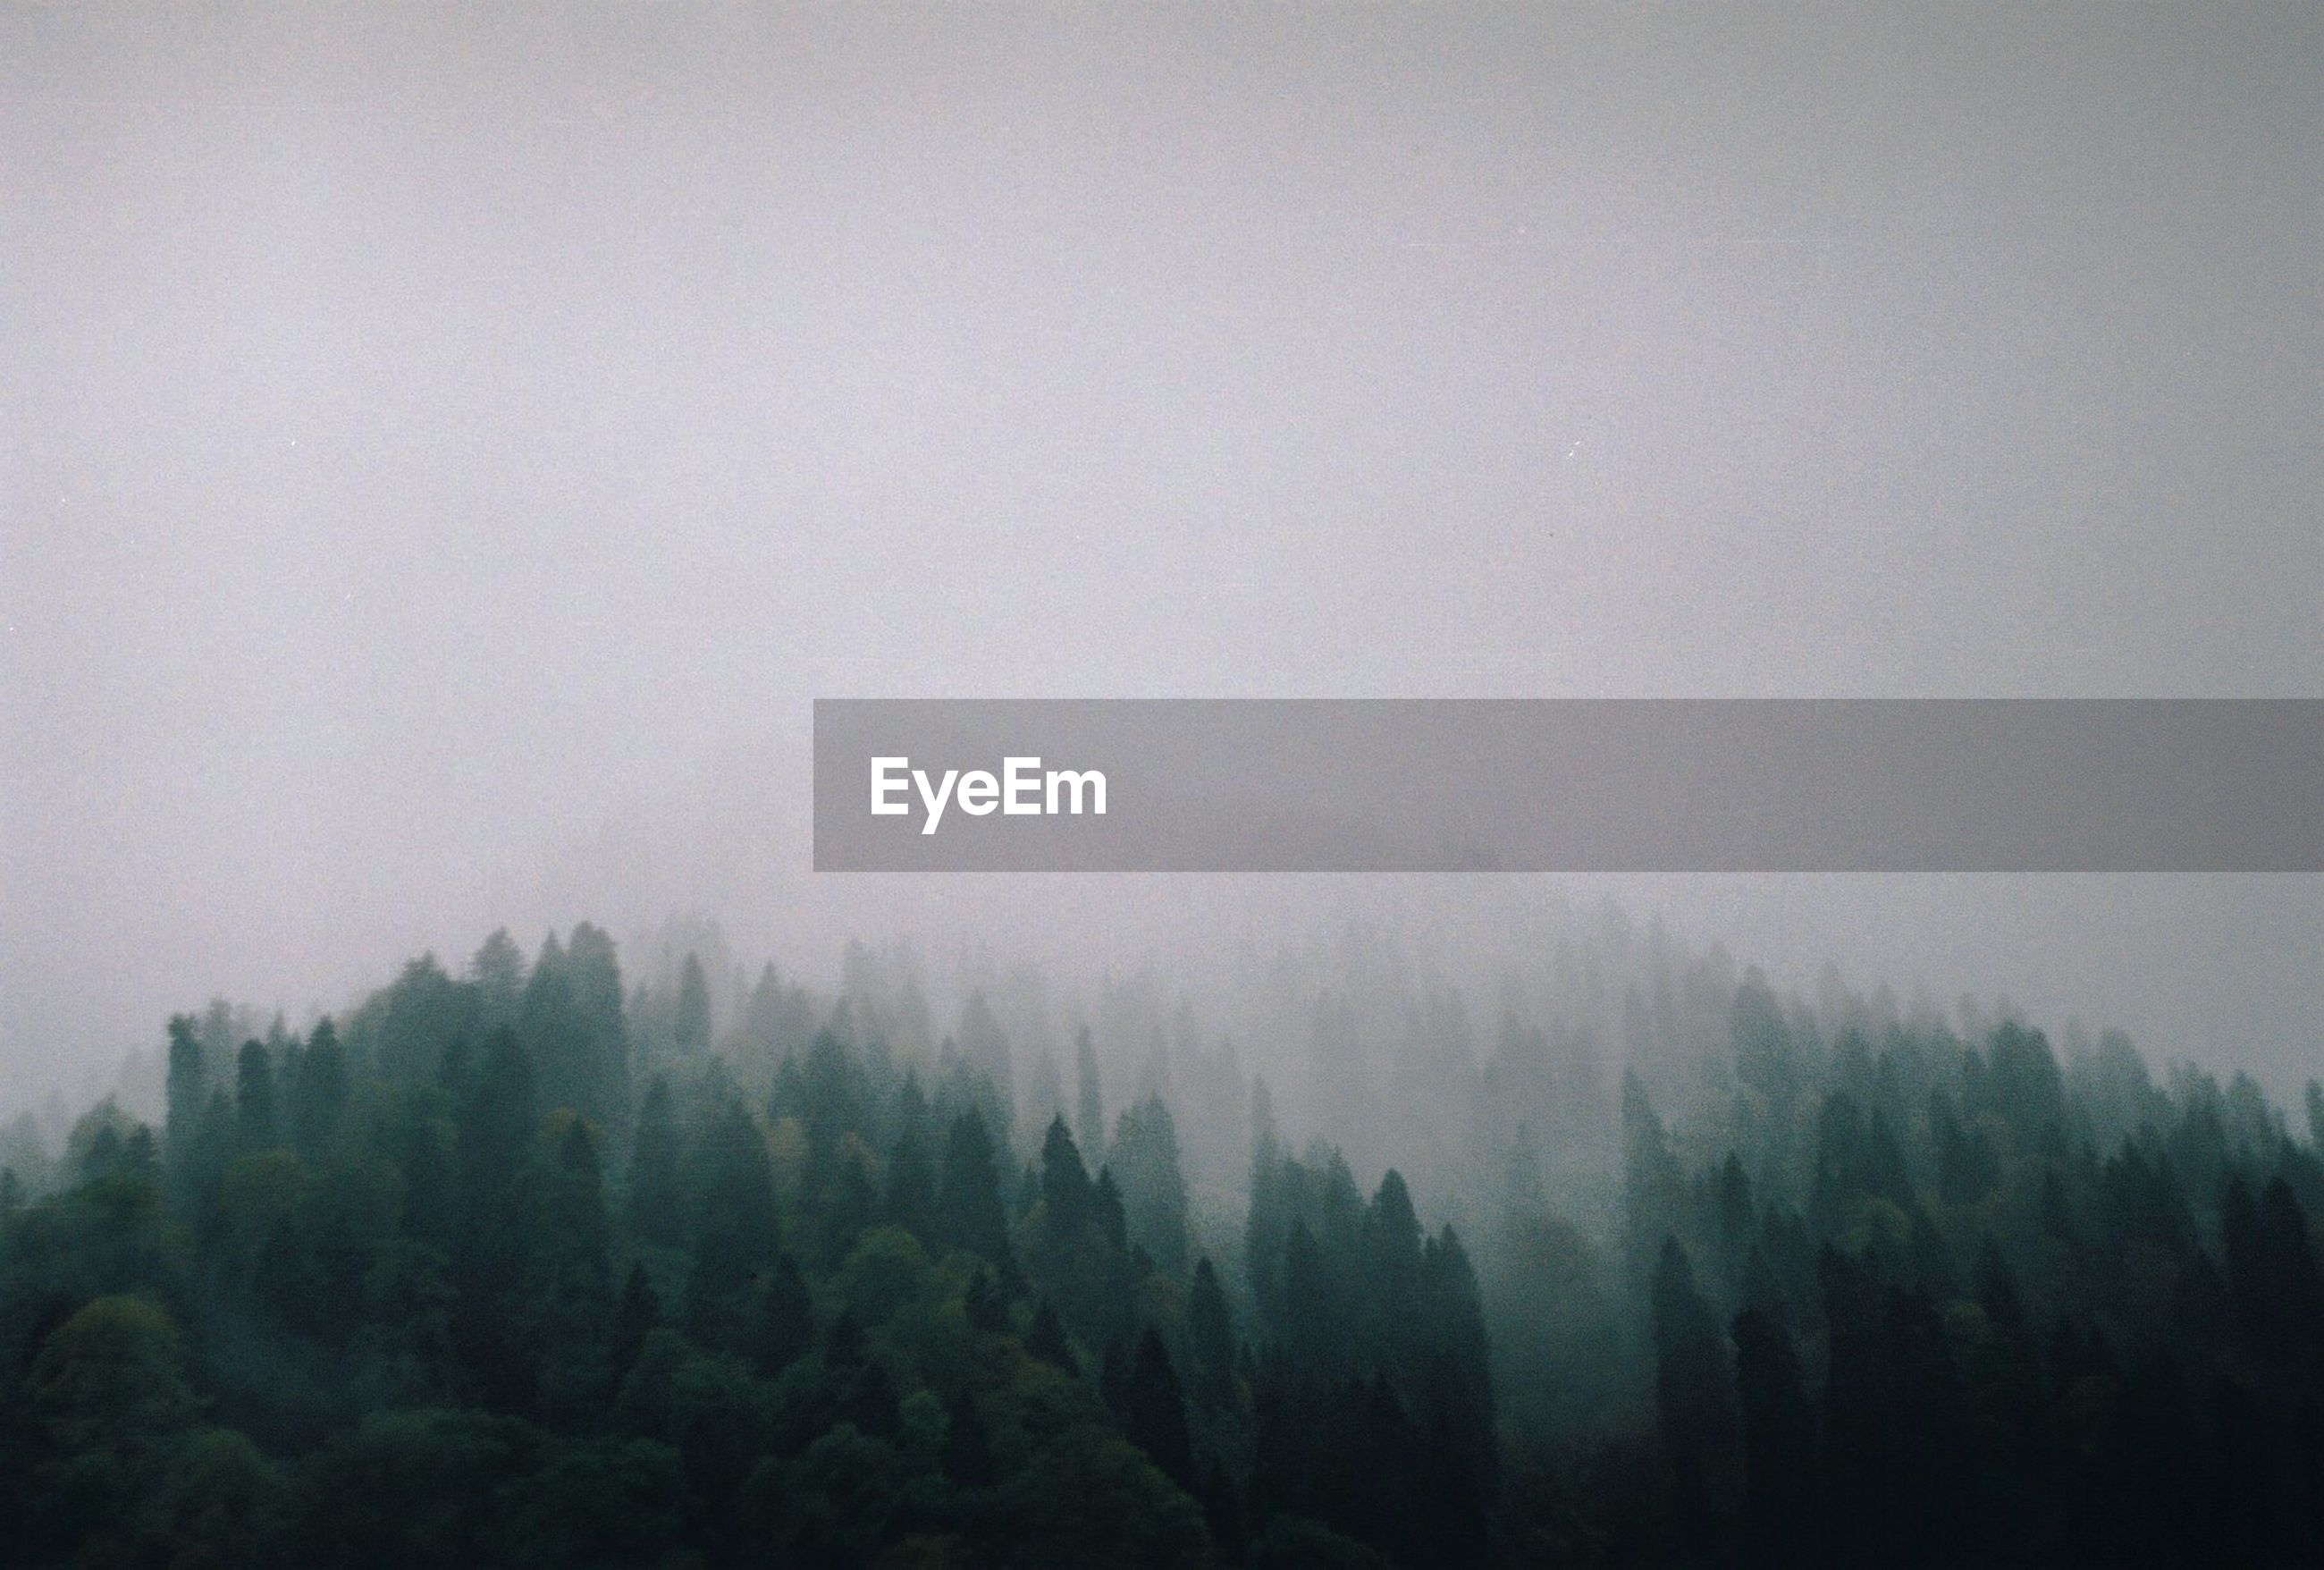 SCENIC VIEW OF FOREST IN FOGGY WEATHER AGAINST SKY